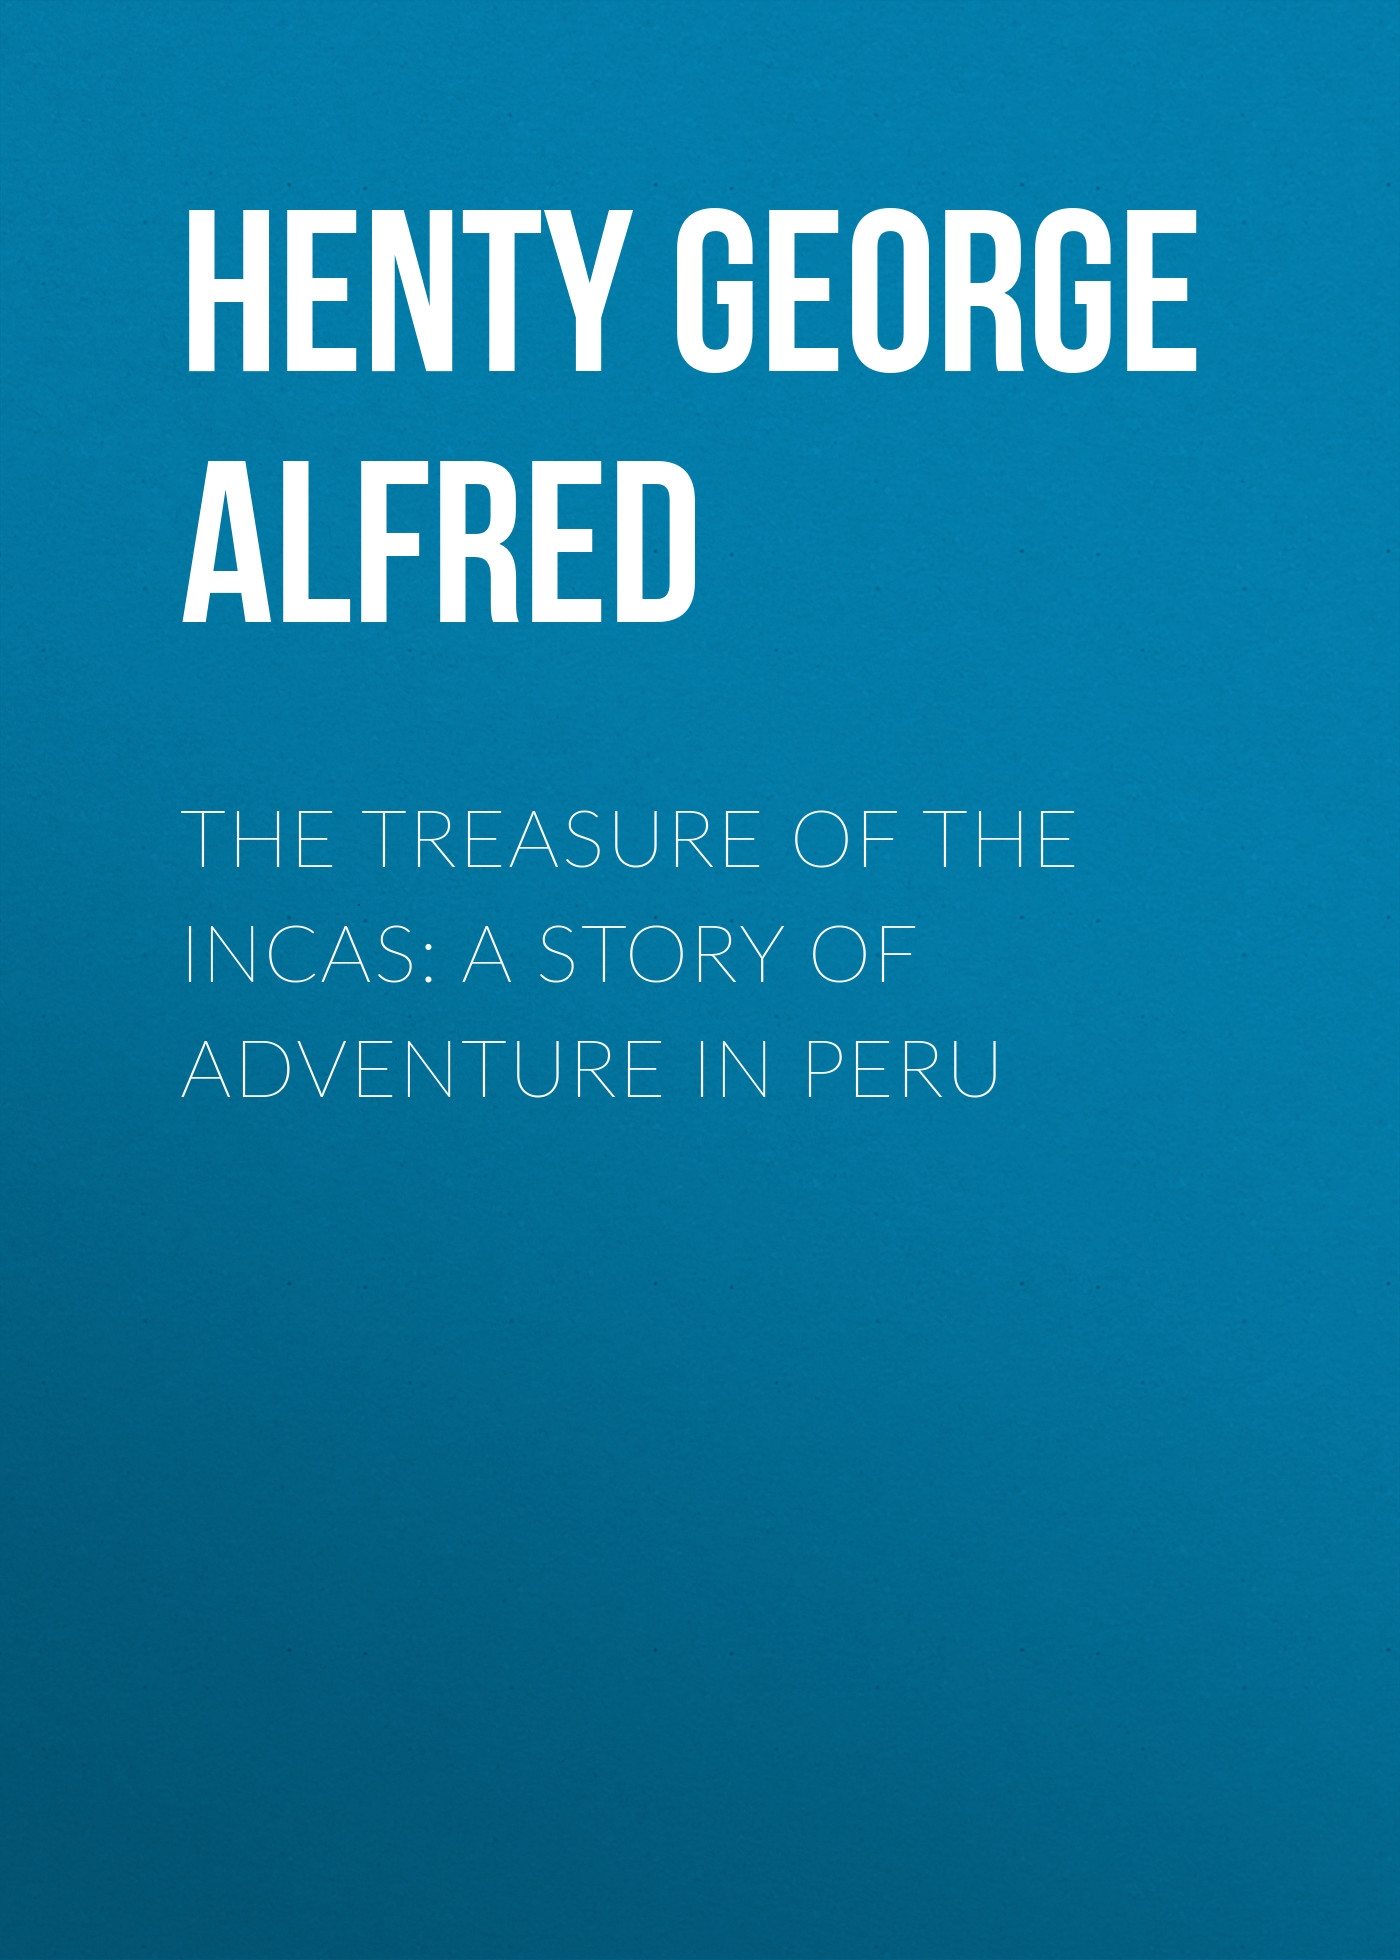 Henty George Alfred The Treasure of the Incas: A Story of Adventure in Peru henty george alfred in the reign of terror the adventures of a westminster boy